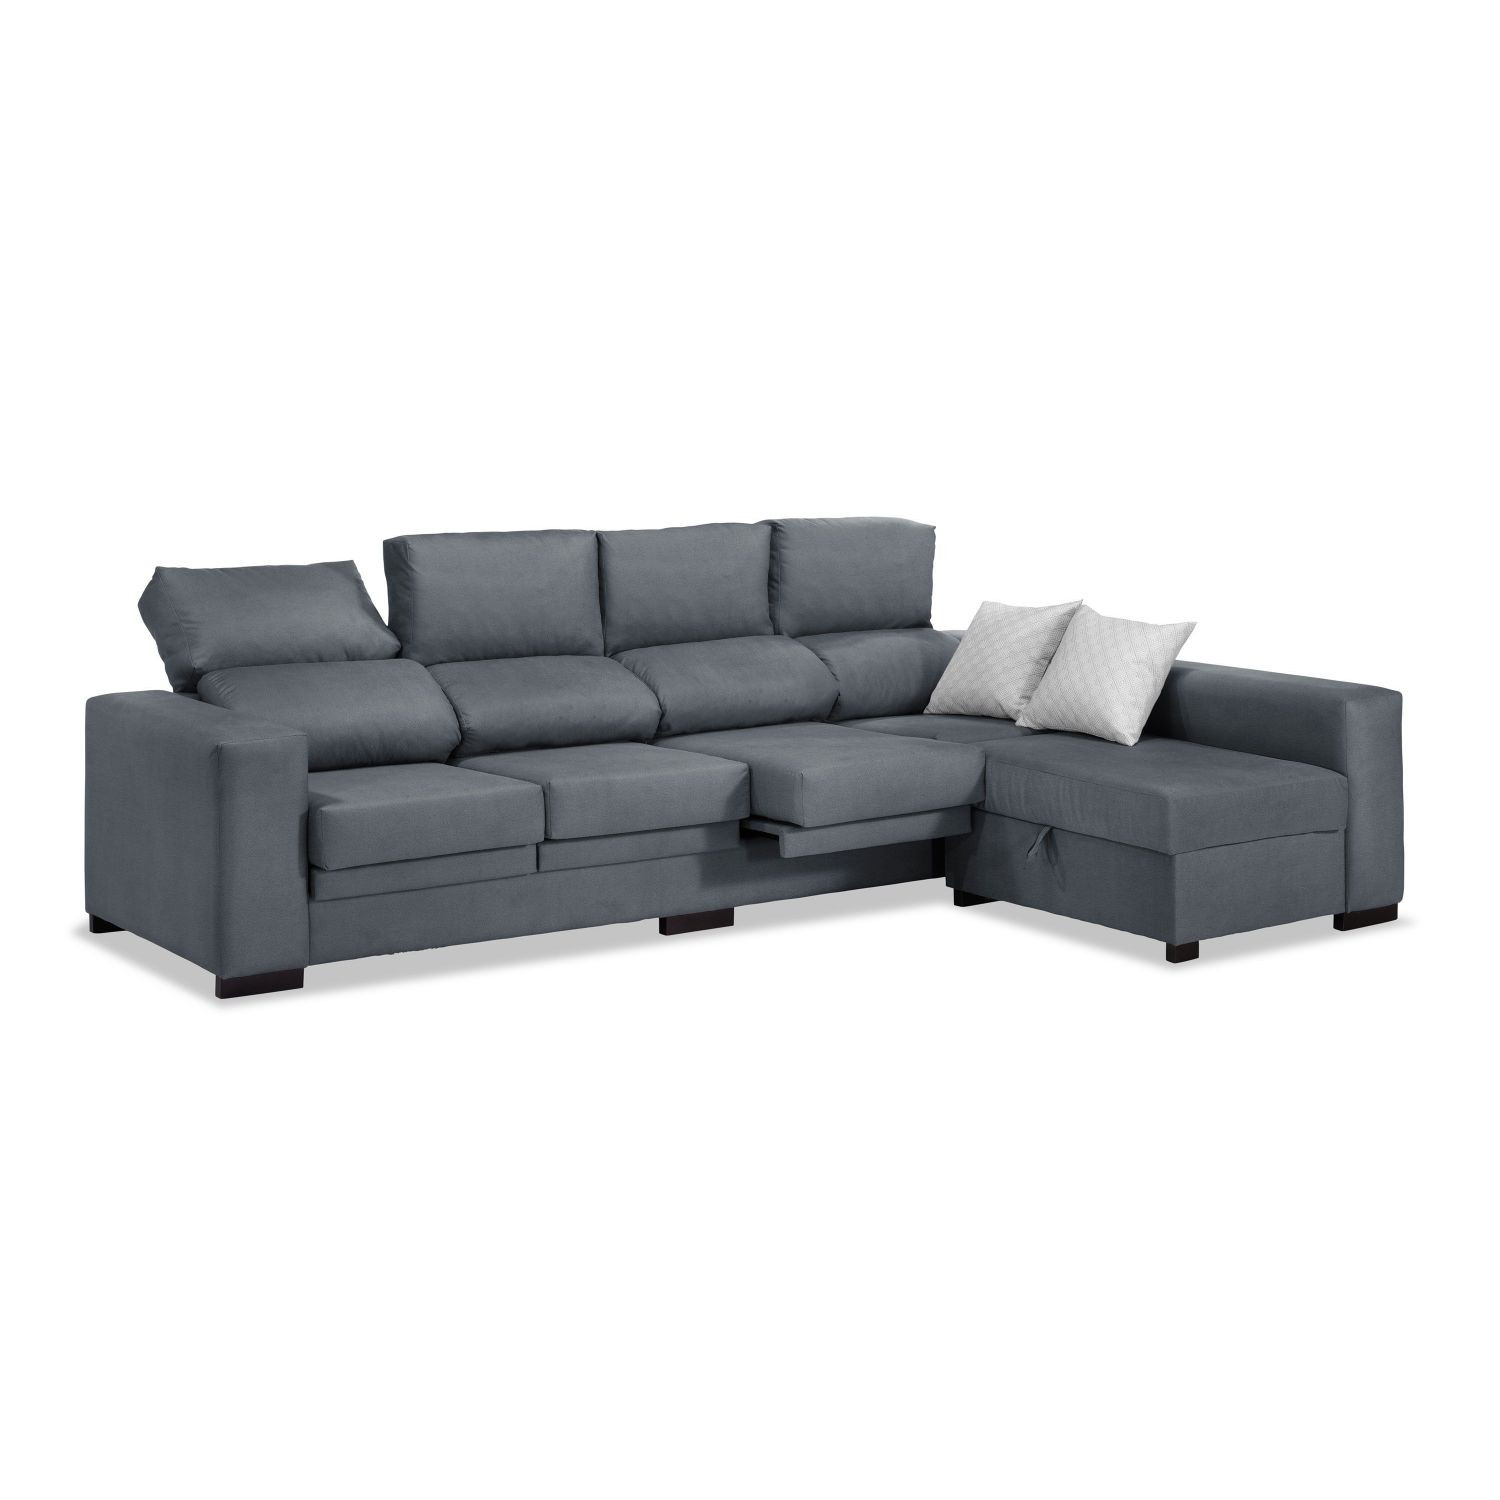 Sofa Chaise Longue 4 Plazas Fresco Contemporáneo Negro Muebles Reclinables Conjunto De sofás Of 47  Único sofa Chaise Longue 4 Plazas